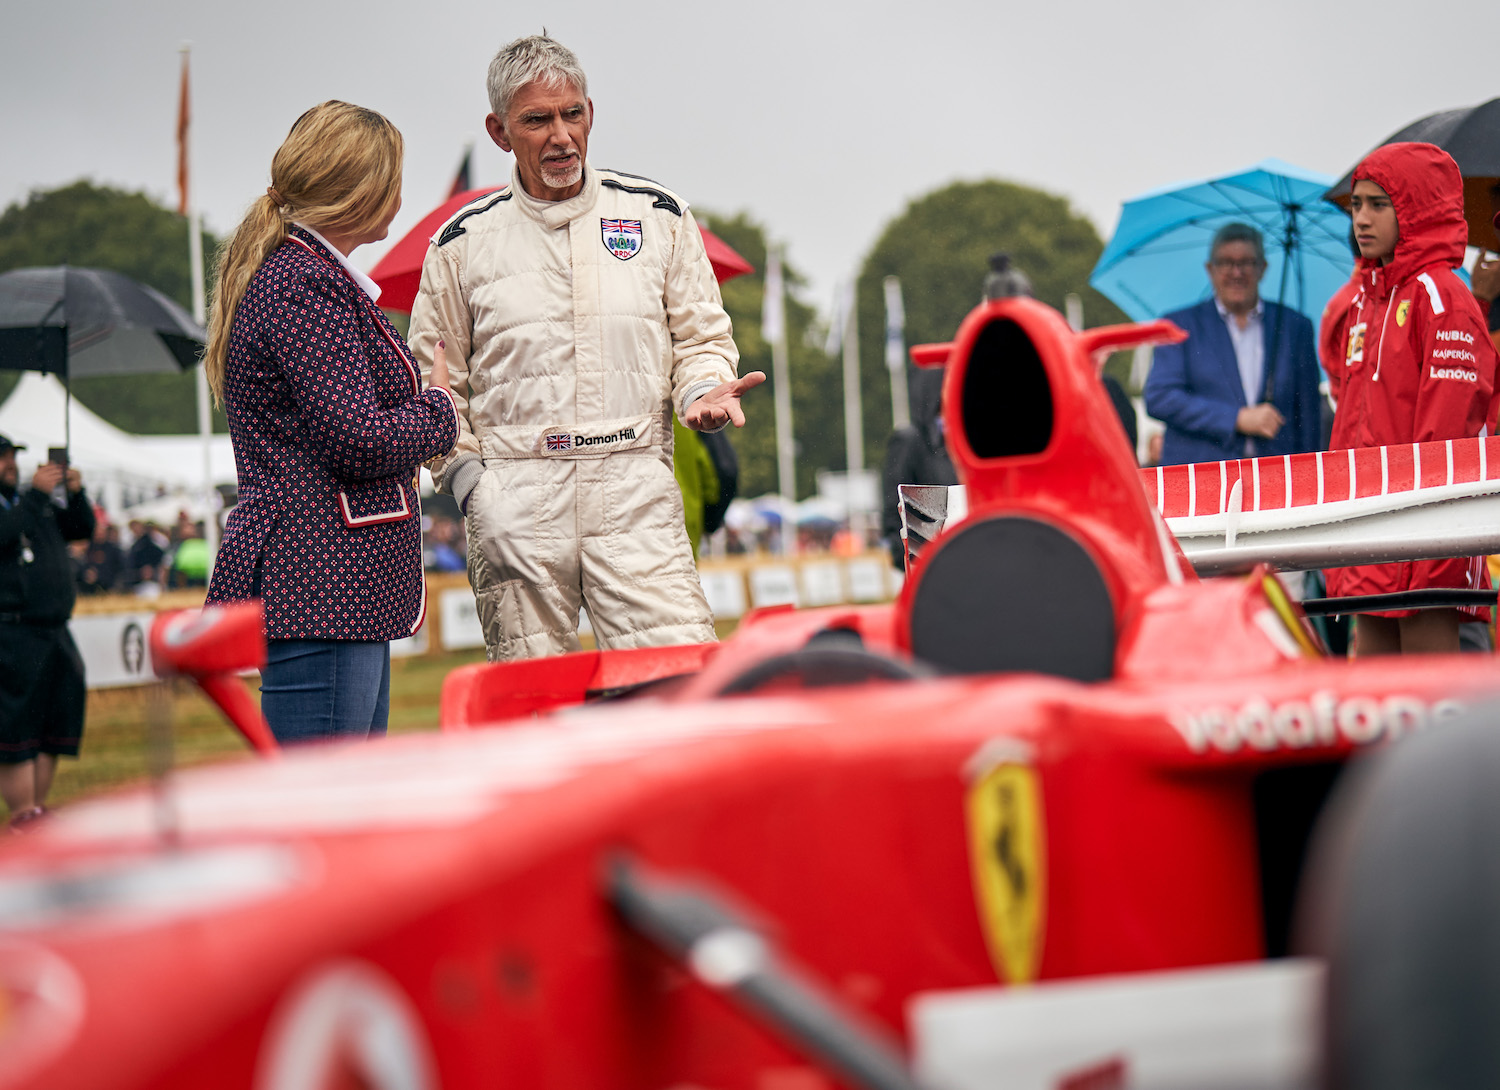 race car driver chatting with woman at goodwood festival of speed